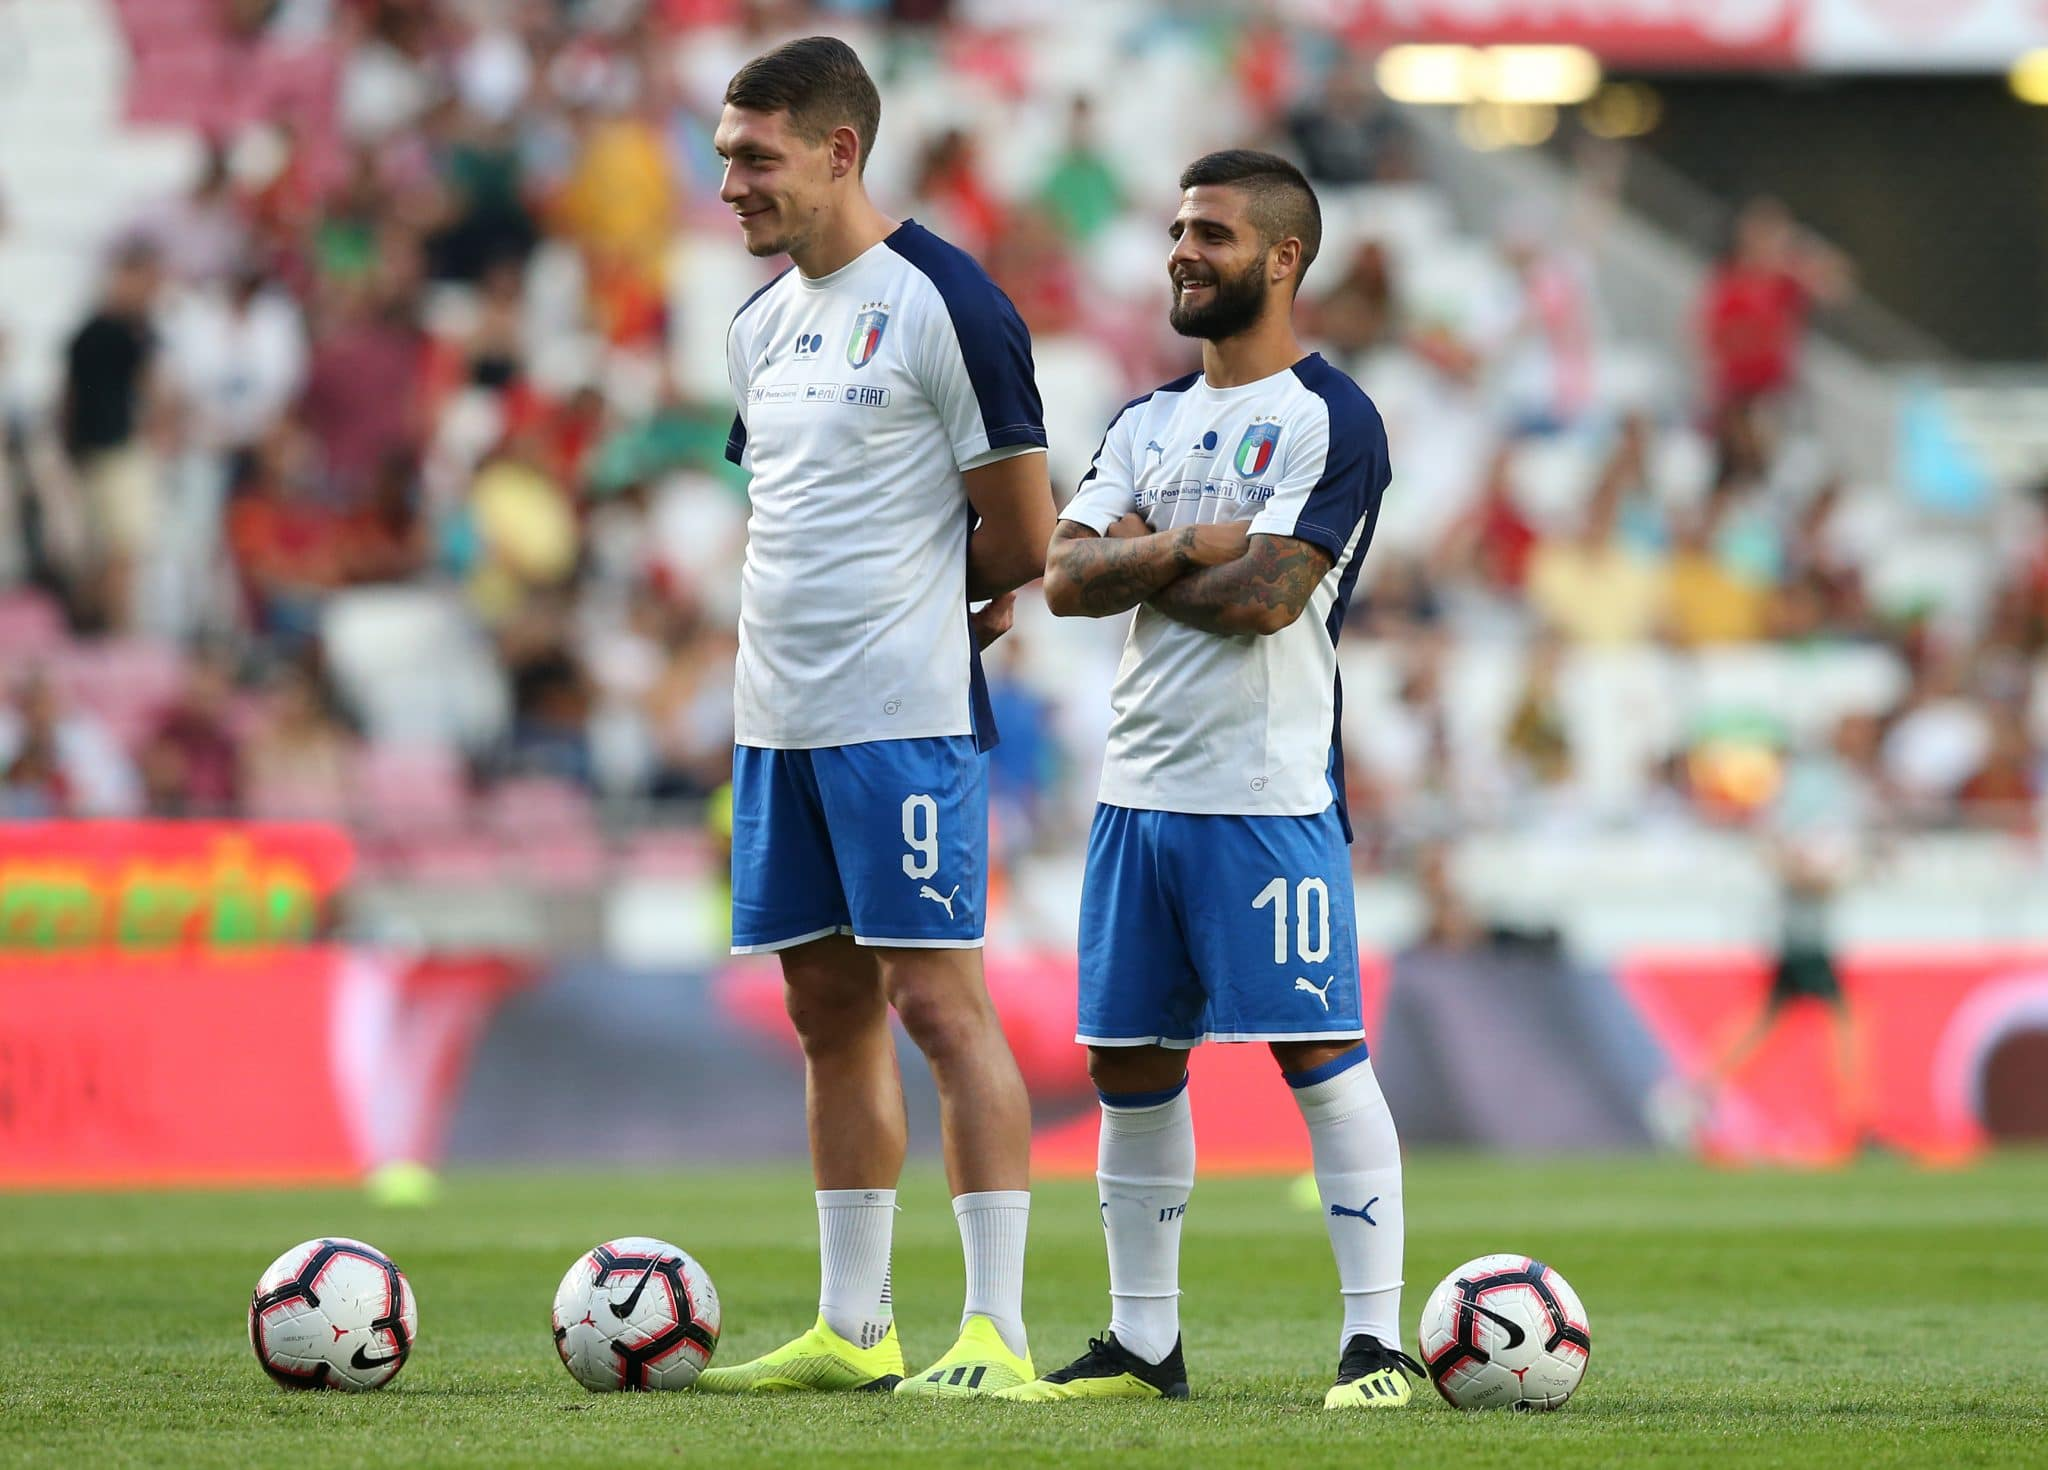 LISBON, PORTUGAL - SEPTEMBER 10:  Andrea Belotti of Italy and Torino FC and Lorenzo Insigne of Italy and SSC Napoli during the UEFA Nations League A - Group 3 match between Portugal and Italy at Estadio da Luz on September 10, 2018 in Lisbon, Portugal.  (Photo by Gualter Fatia/Getty Images)